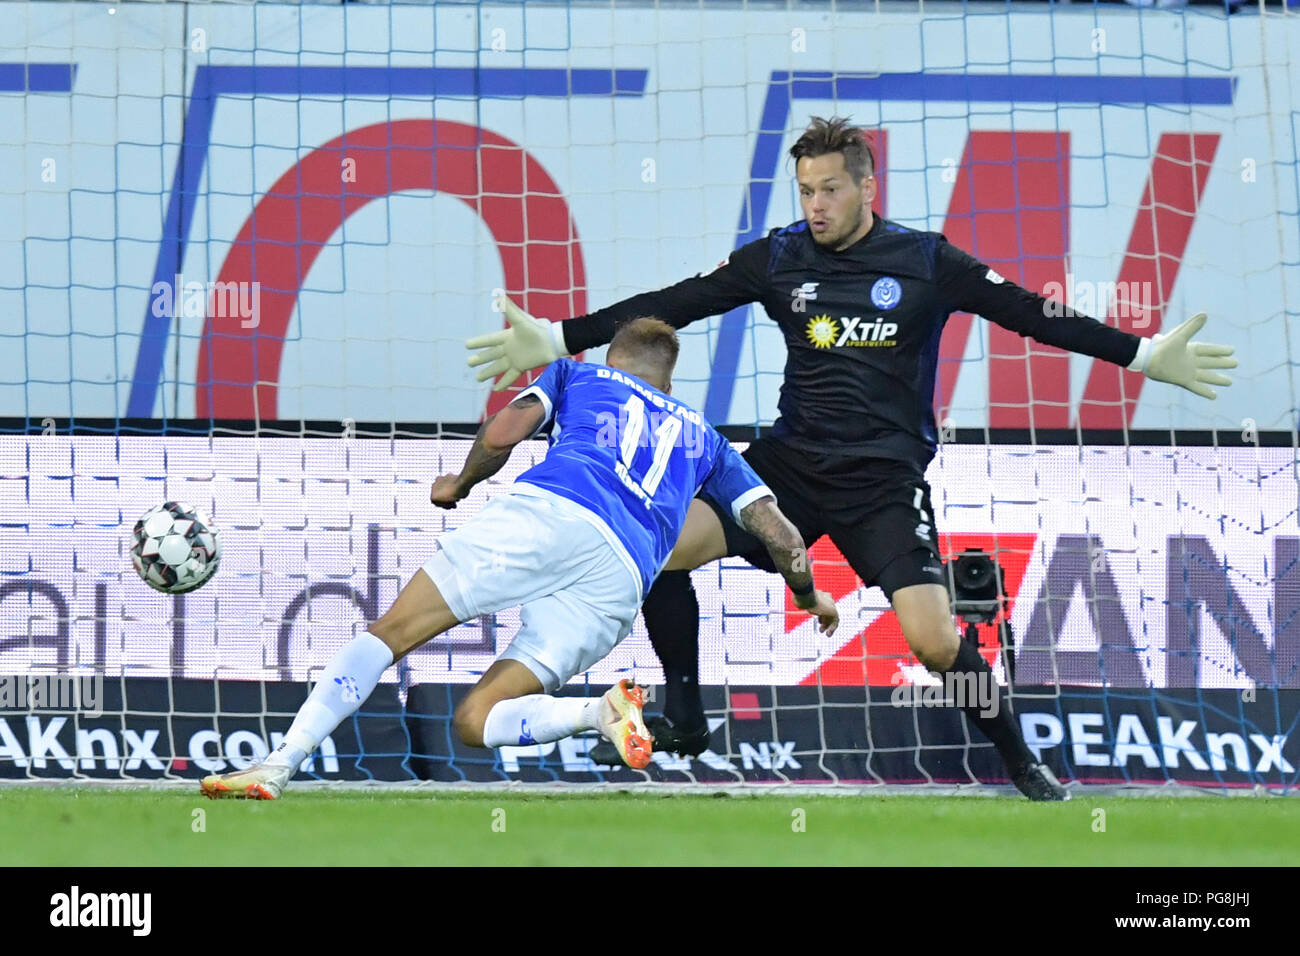 Darmstadt, Germany. 24th Aug, 2018. Soccer, 2nd Bundesliga, Darmstadt 98 vs MSV Duisburg, 3rd Matchday, at the Merck Stadium at Boellenfalltor. Darmstadt's Tobias Kempe (L) scores the 3-0 goal past Duisburg goalkeeper Daniel Davari. Credit: Uwe Anspach/dpa - IMPORTANT NOTICE: DFL regulations prohibit any use of photographs as image sequences and/or quasi-video./dpa/Alamy Live News - Stock Image